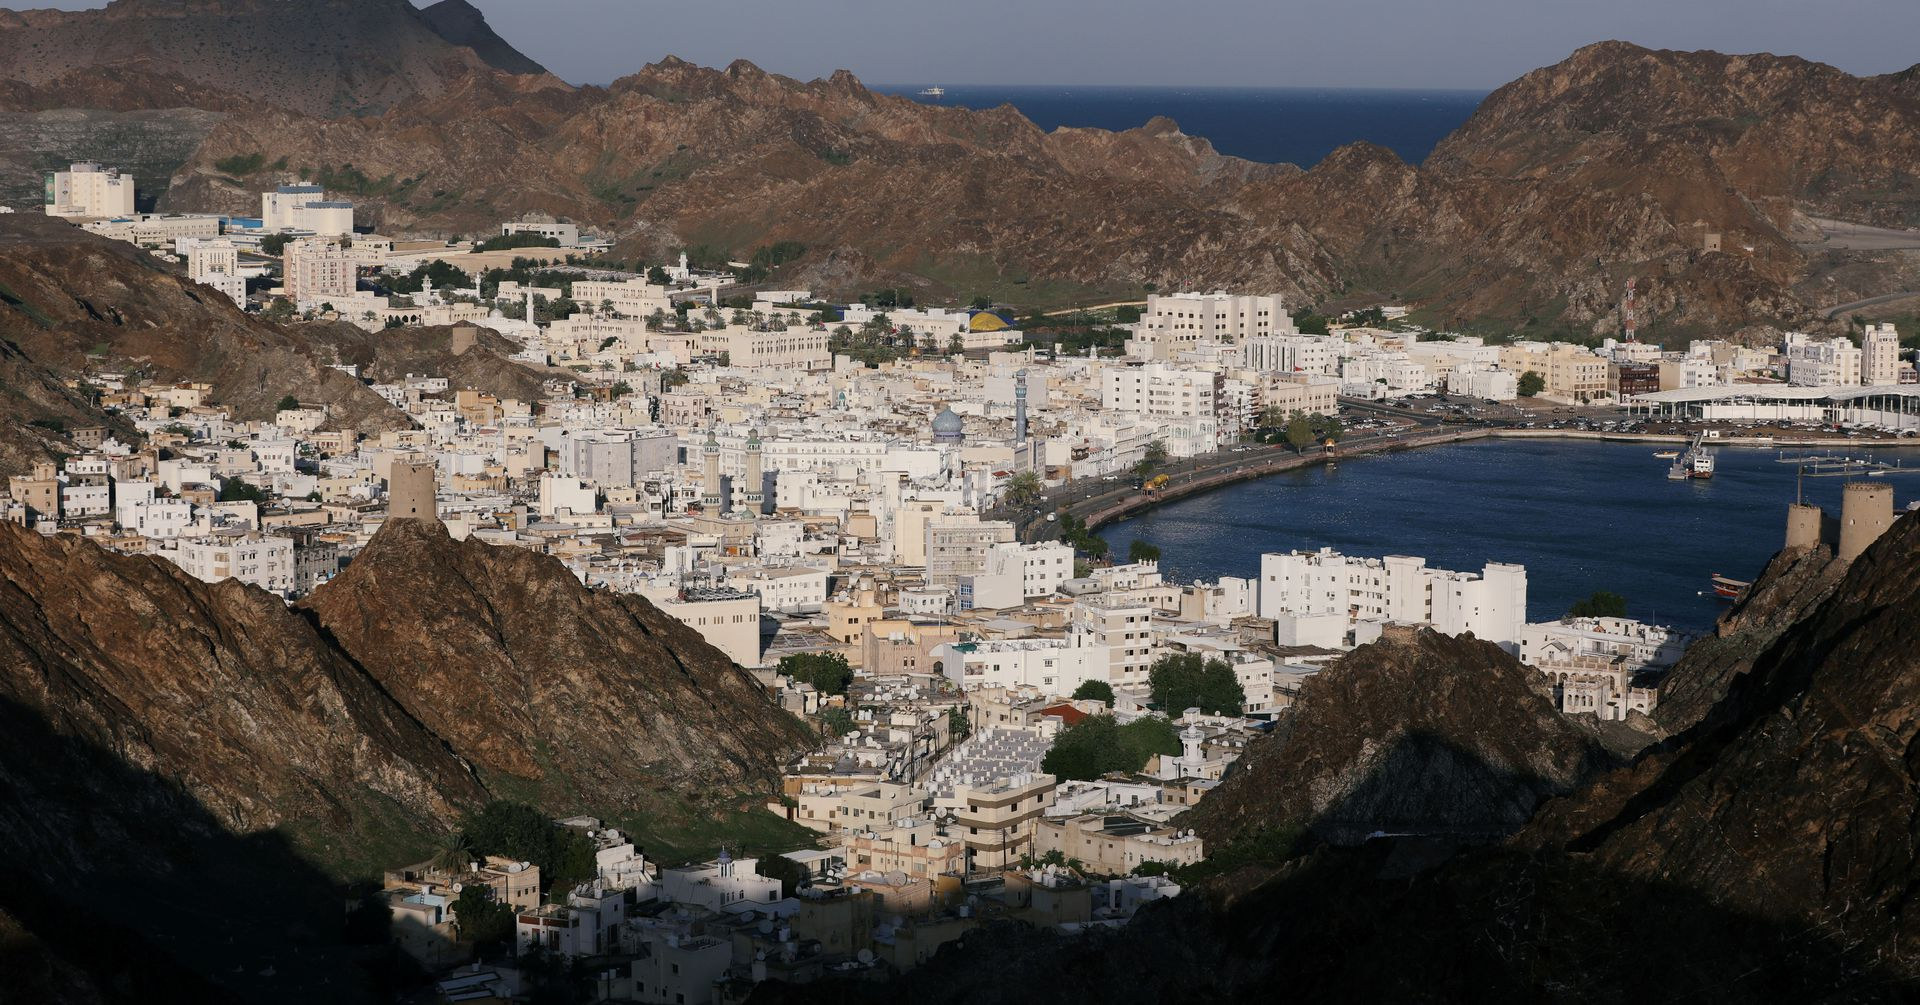 Oman Announces End of Direct Impacts of Cyclone Shaheen